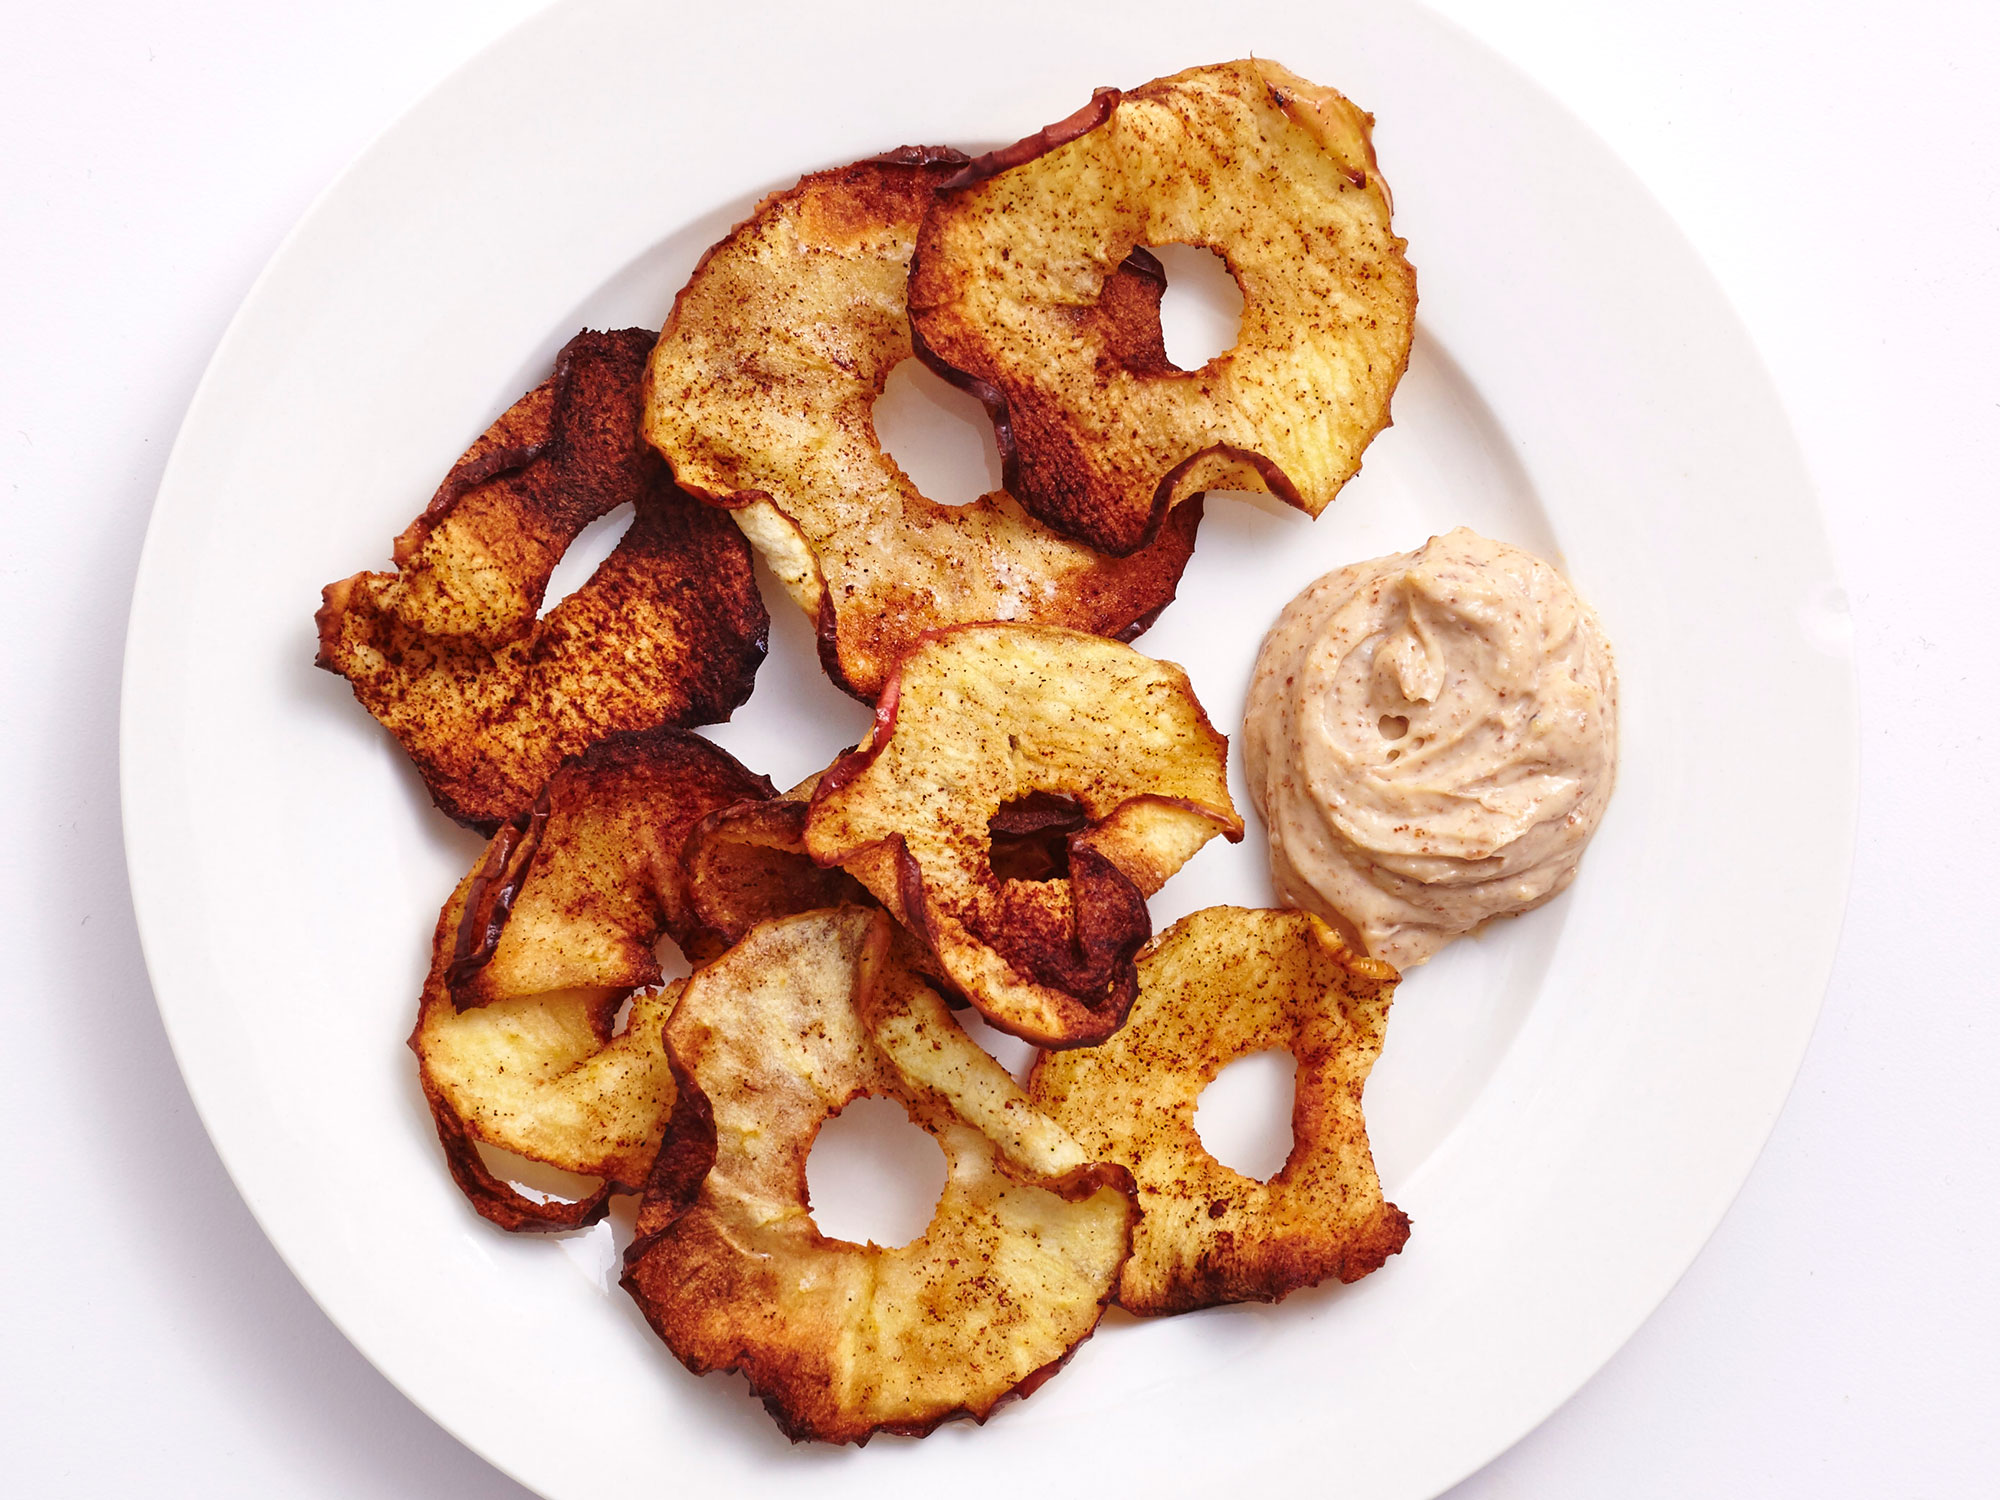 ck-Make These Easy Air-Fried Cinnamon Apple Chips With Almond Yogurt Dip